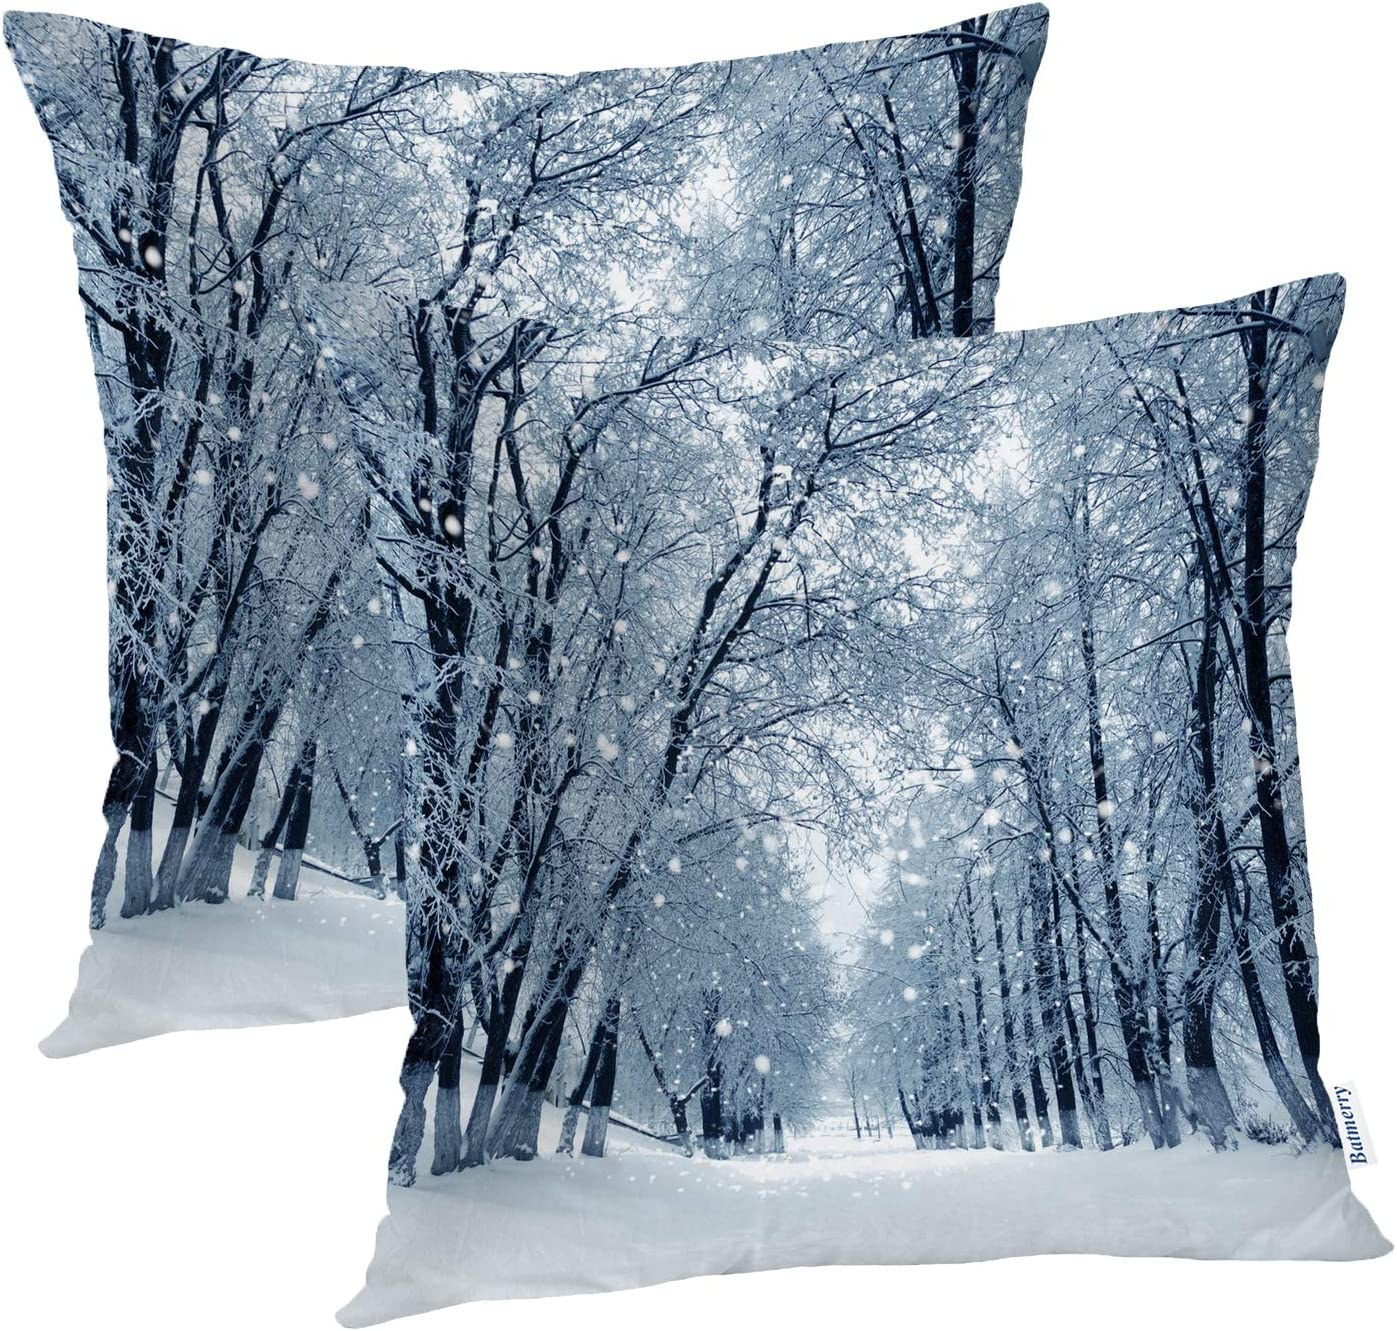 Amazon Com Batmerry Winter Pillow Covers 18x18 Inch Set Of 2 Blue Snow Snowstorm In Park Winter Landscape Scene Double Sided Decorative Pillows Cases Throw Pillows Covers Home Kitchen